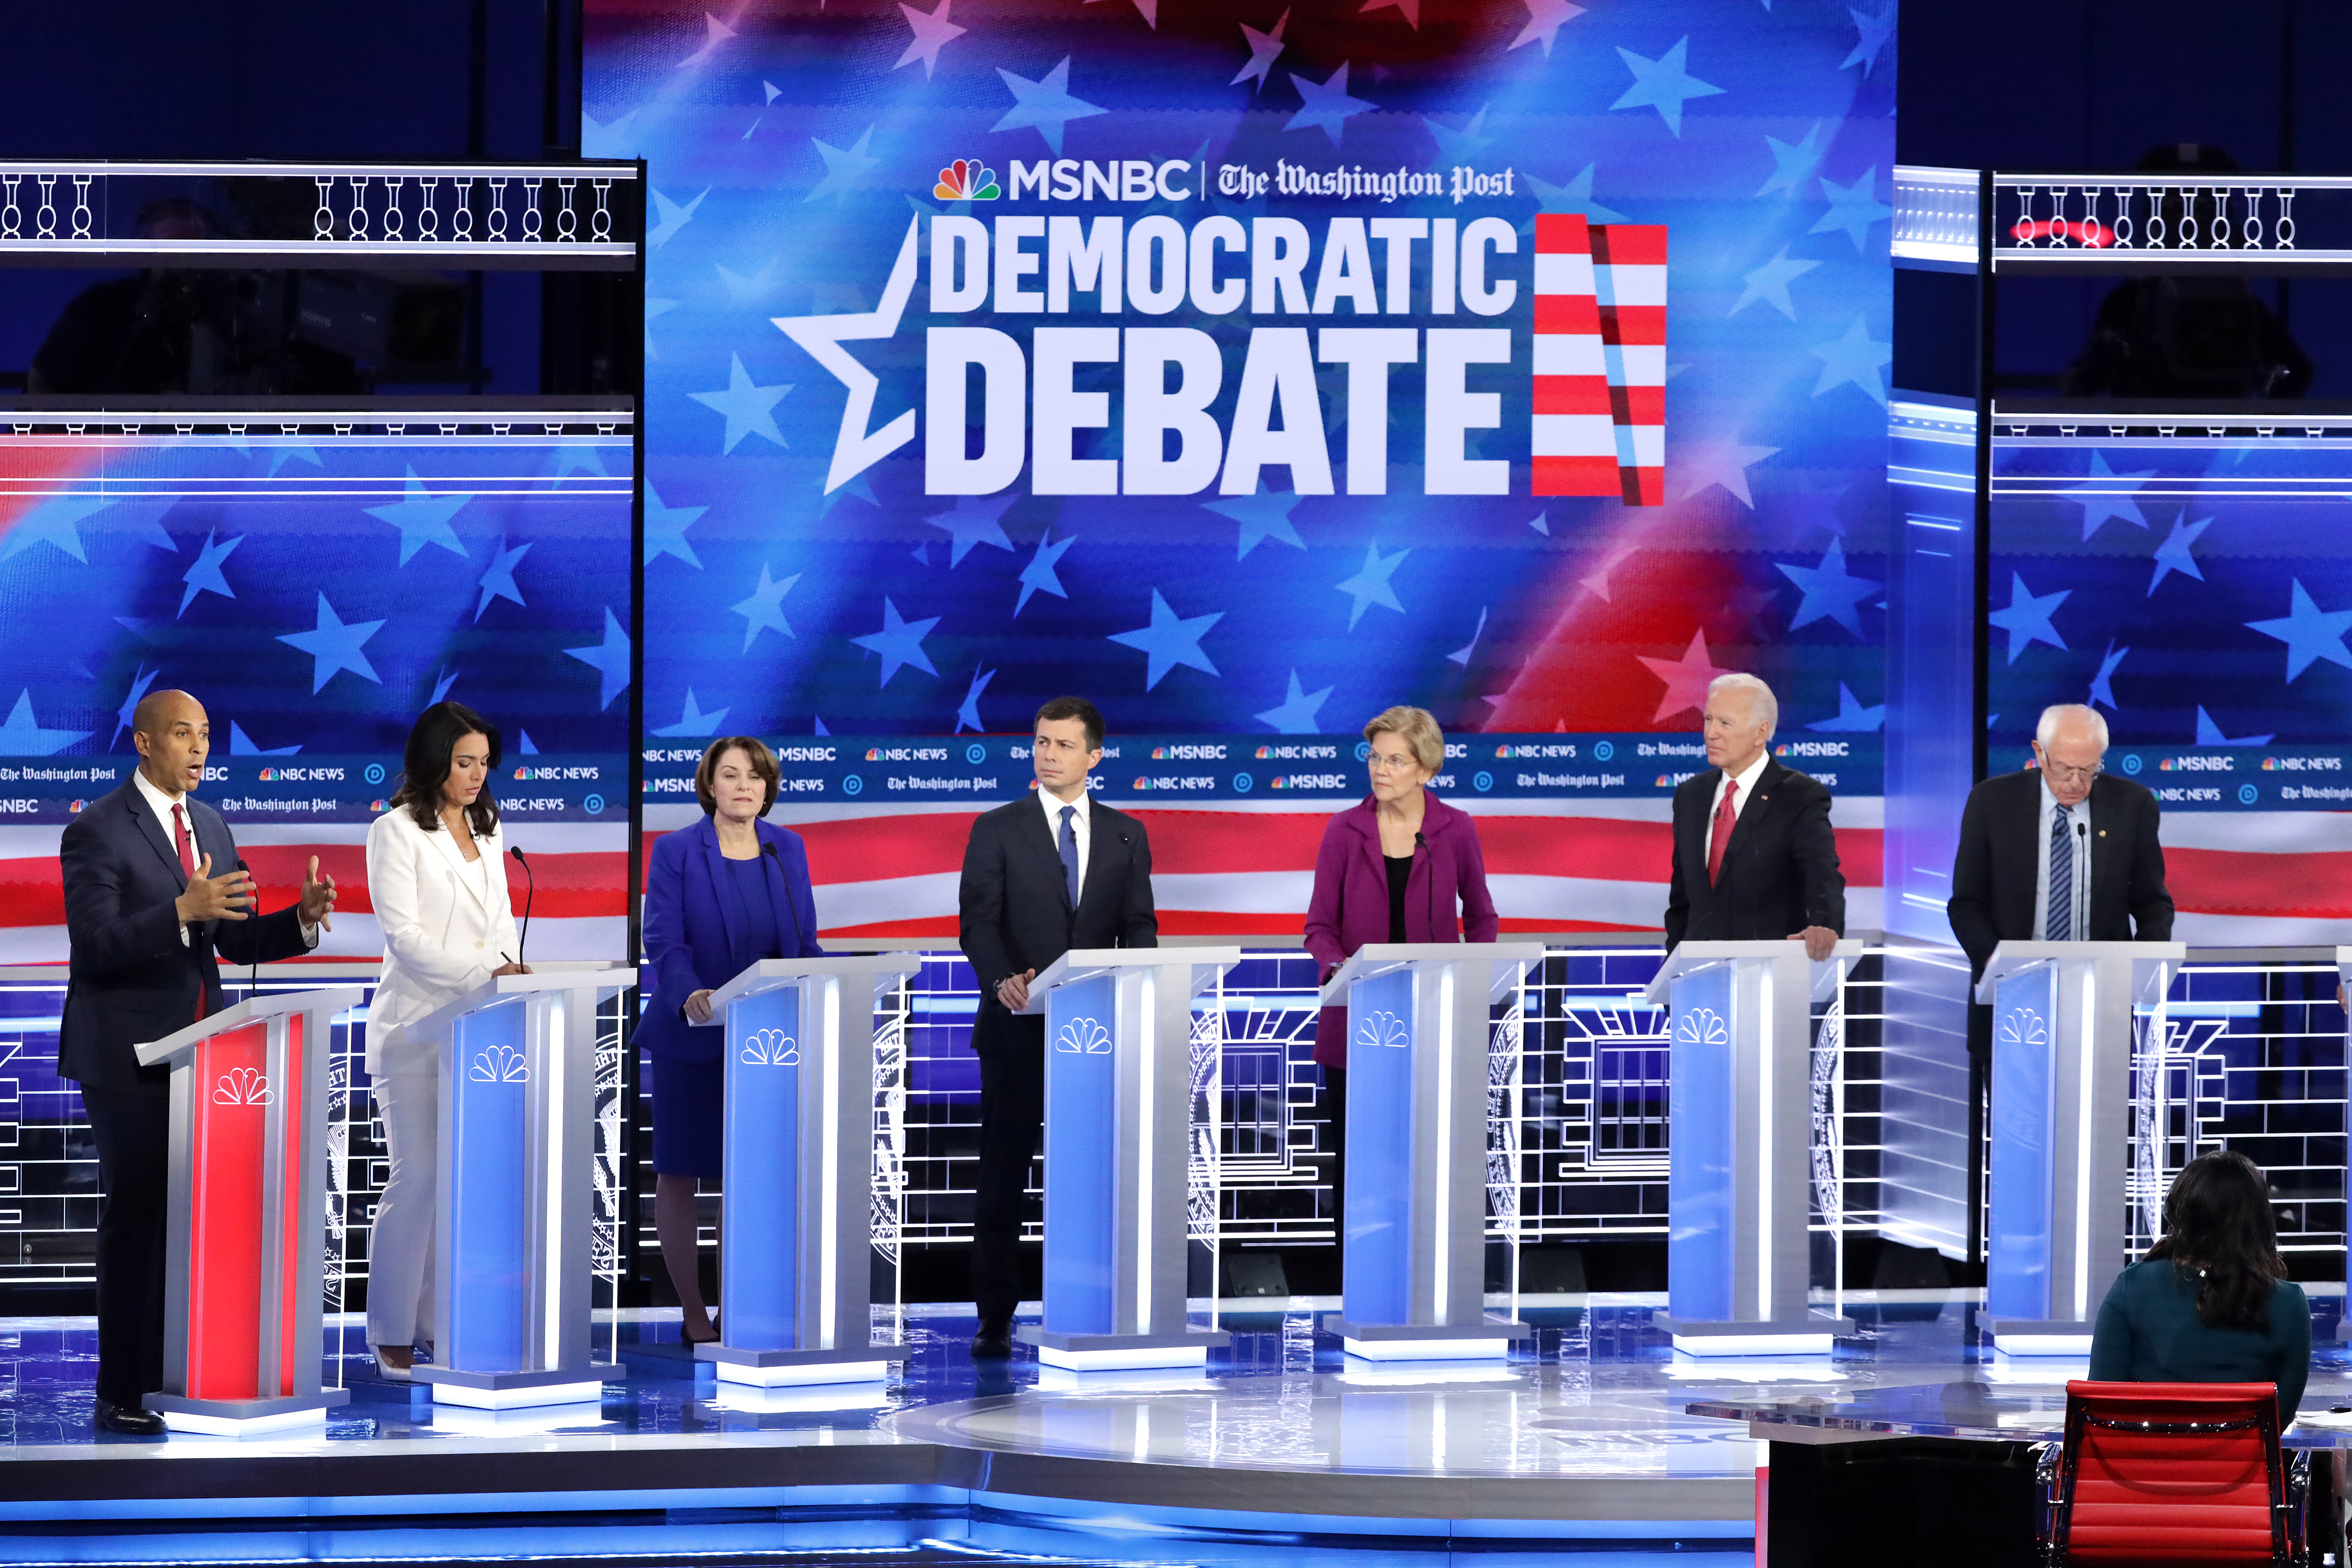 ATLANTA, GEORGIA - NOVEMBER 20: Democratic presidential candidates (L-R) Rep. Tulsi Gabbard (D-HI) Sen. Amy Klobuchar (D-MN), South Bend, Indiana Mayor Pete Buttigieg, Sen. Elizabeth Warren (D-MA), Former Vice President Joe Biden and Sen. Bernie Sanders (I-VT) listen as Sen. Cory Booker (D-NJ) ( far L) during the Democratic Presidential Debate at Tyler Perry Studios November 20, 2019 in Atlanta, Georgia. Ten Democratic presidential hopefuls were chosen from the larger field of candidates to participate in the debate hosted by MSNBC and The Washington Post. (Photo by Alex Wong/Getty Images)